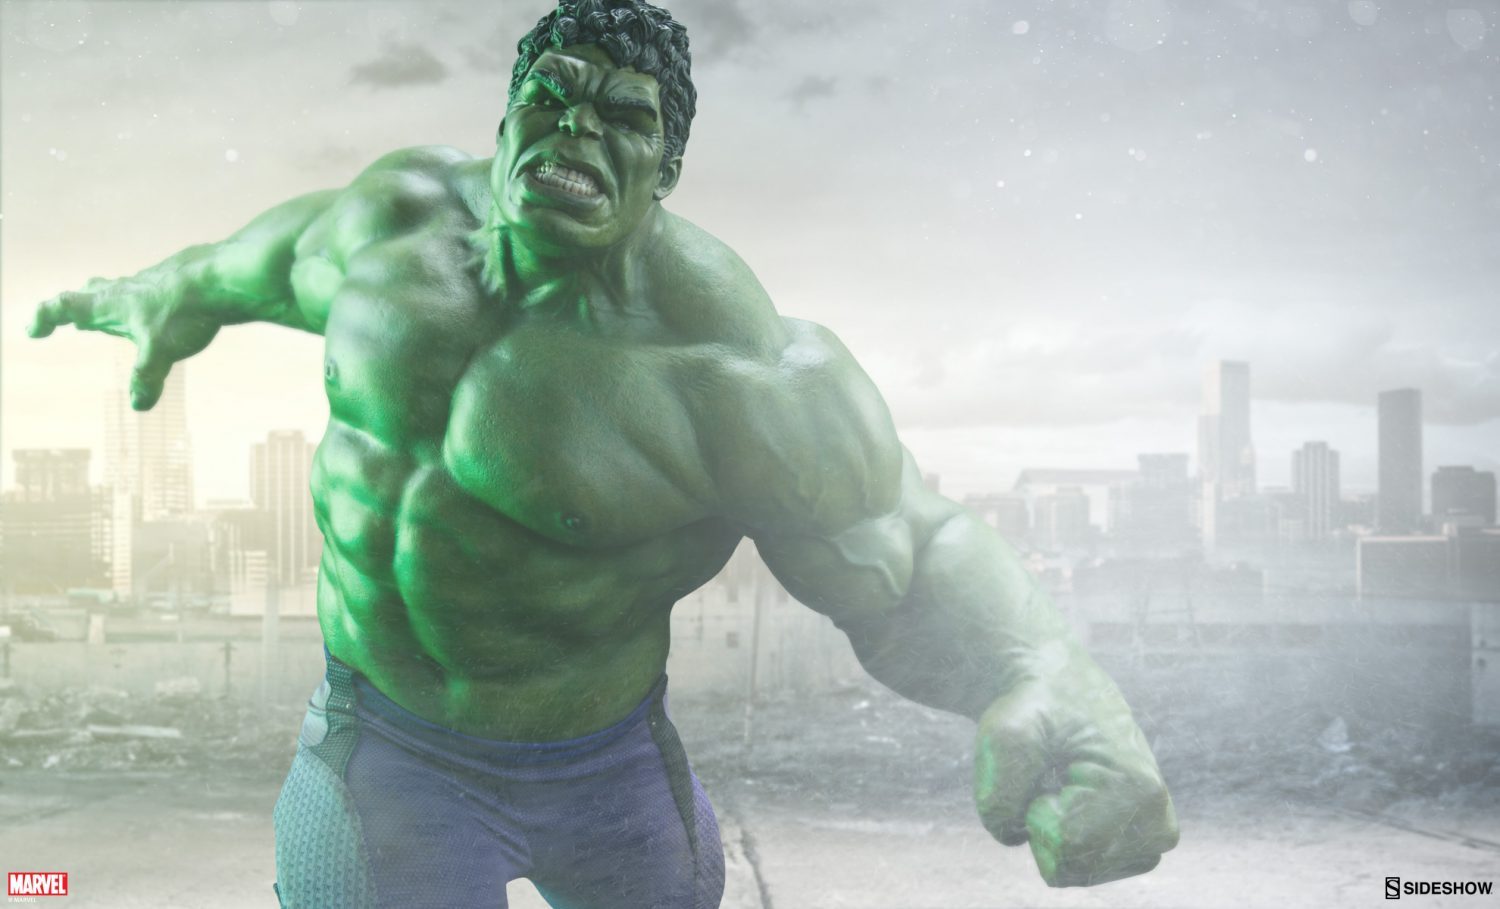 Sideshow Avengers: Age Of Ultron Hulk Maquette Images & Details